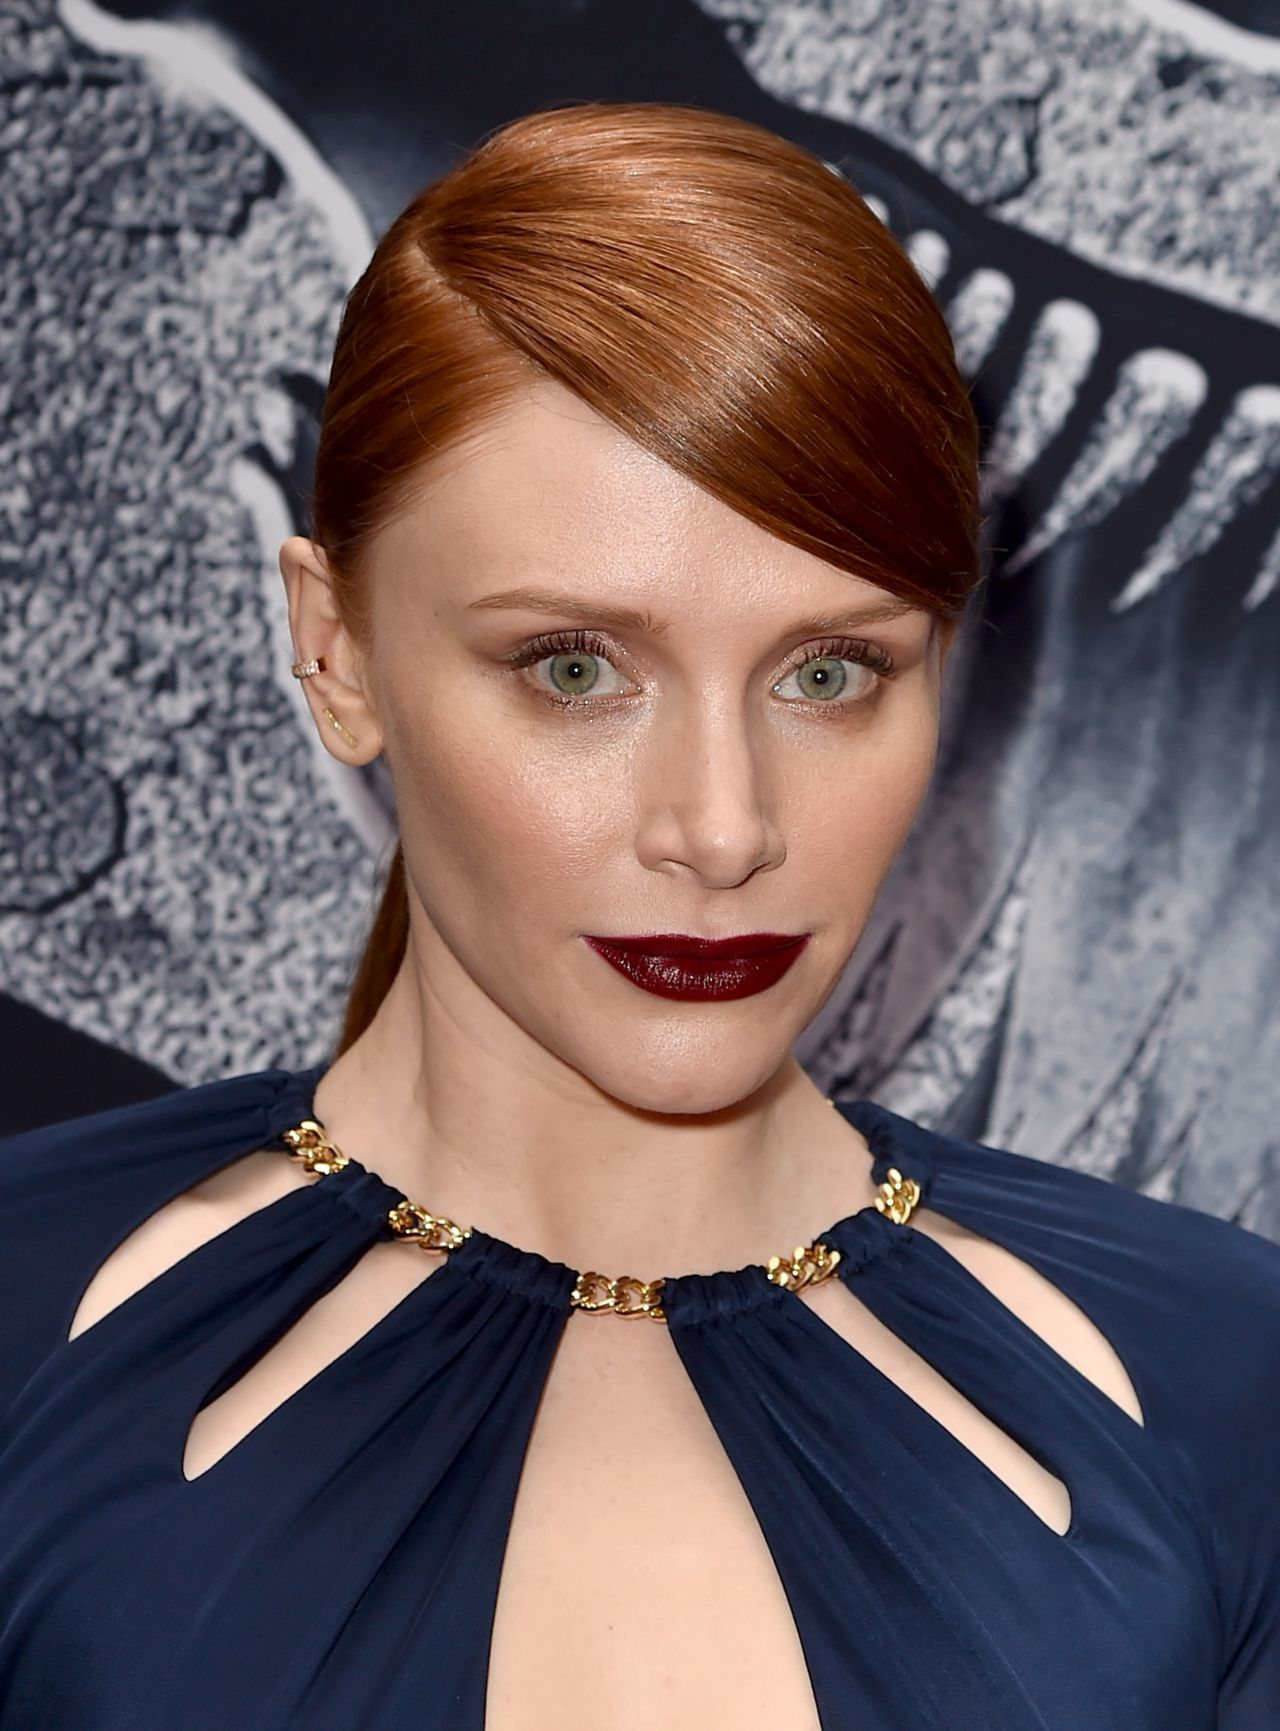 bryce-dallas-howard-jurassic-world-premiere-in-hollywood_2